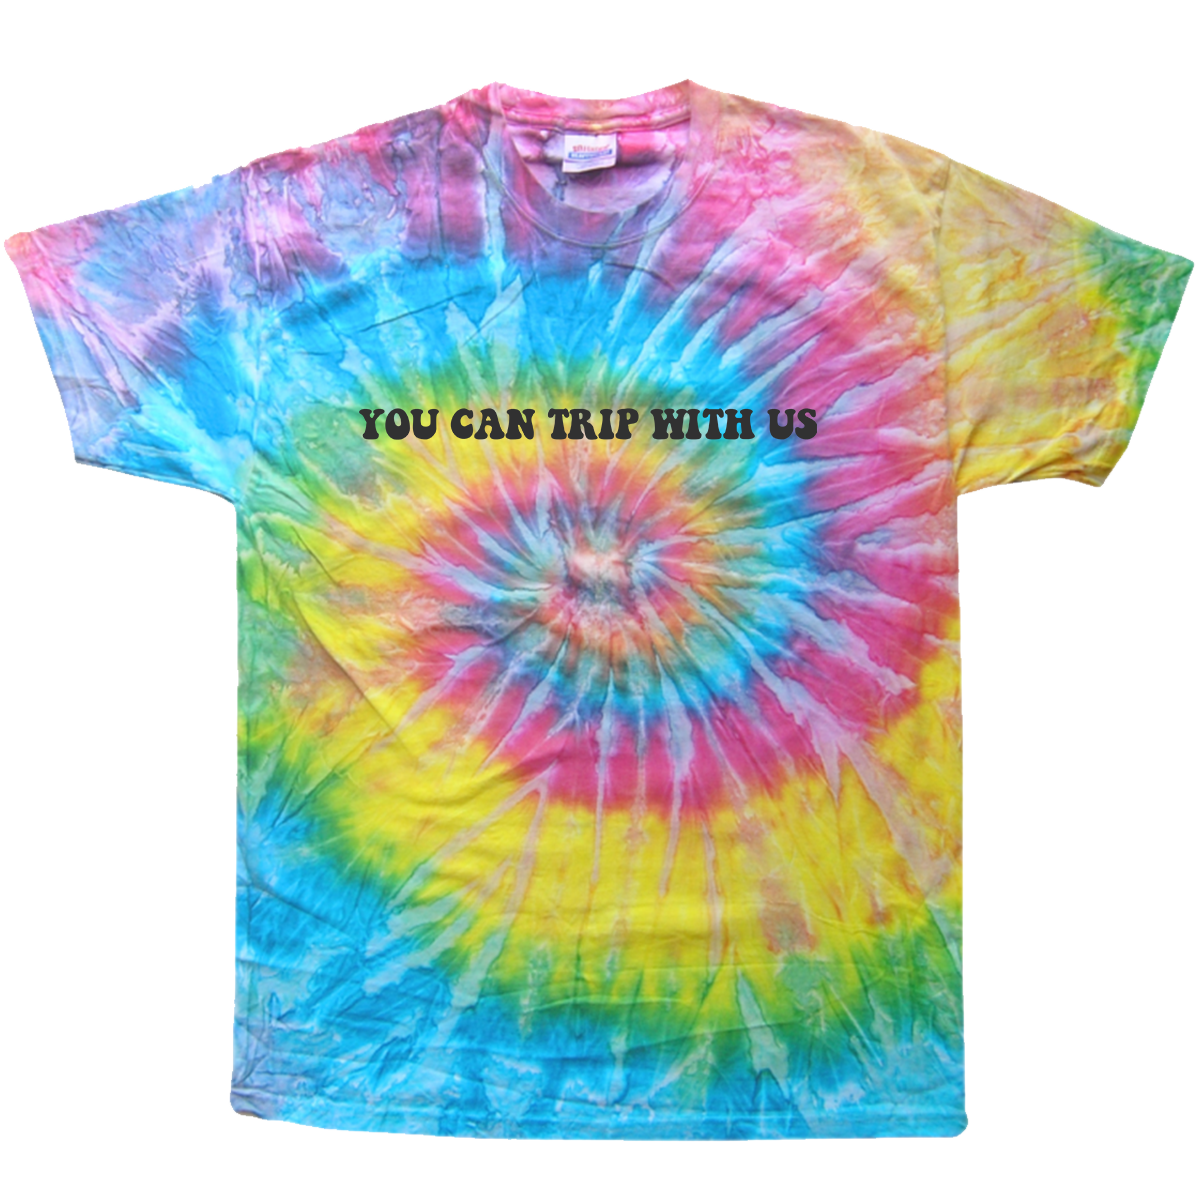 Image of Tie Dye Tour Tee